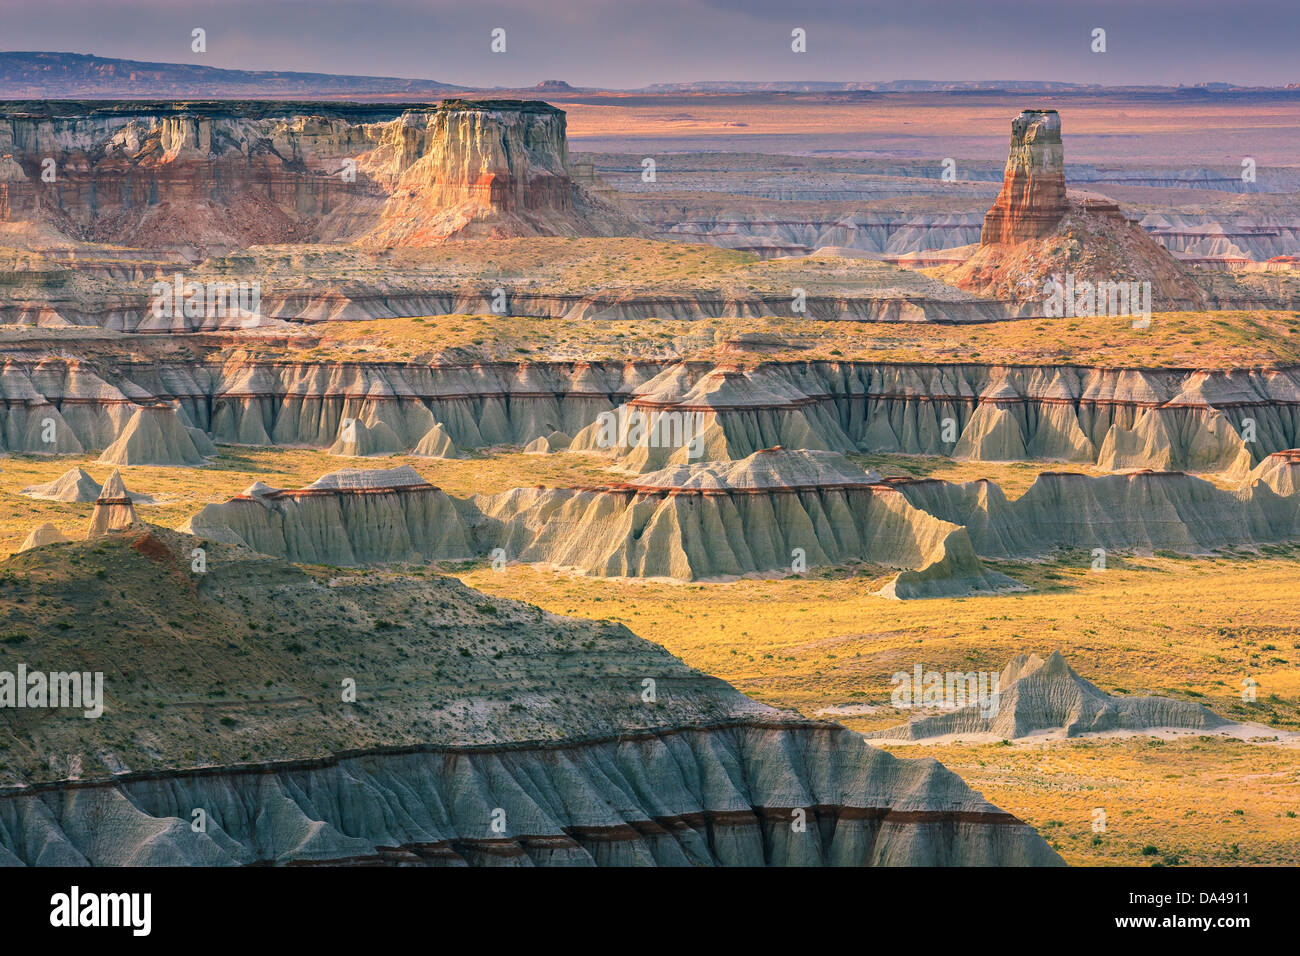 Ha Ho No Geh Canyon, dans le nord-est de l'Arizona près de Tuba City, États-Unis Photo Stock